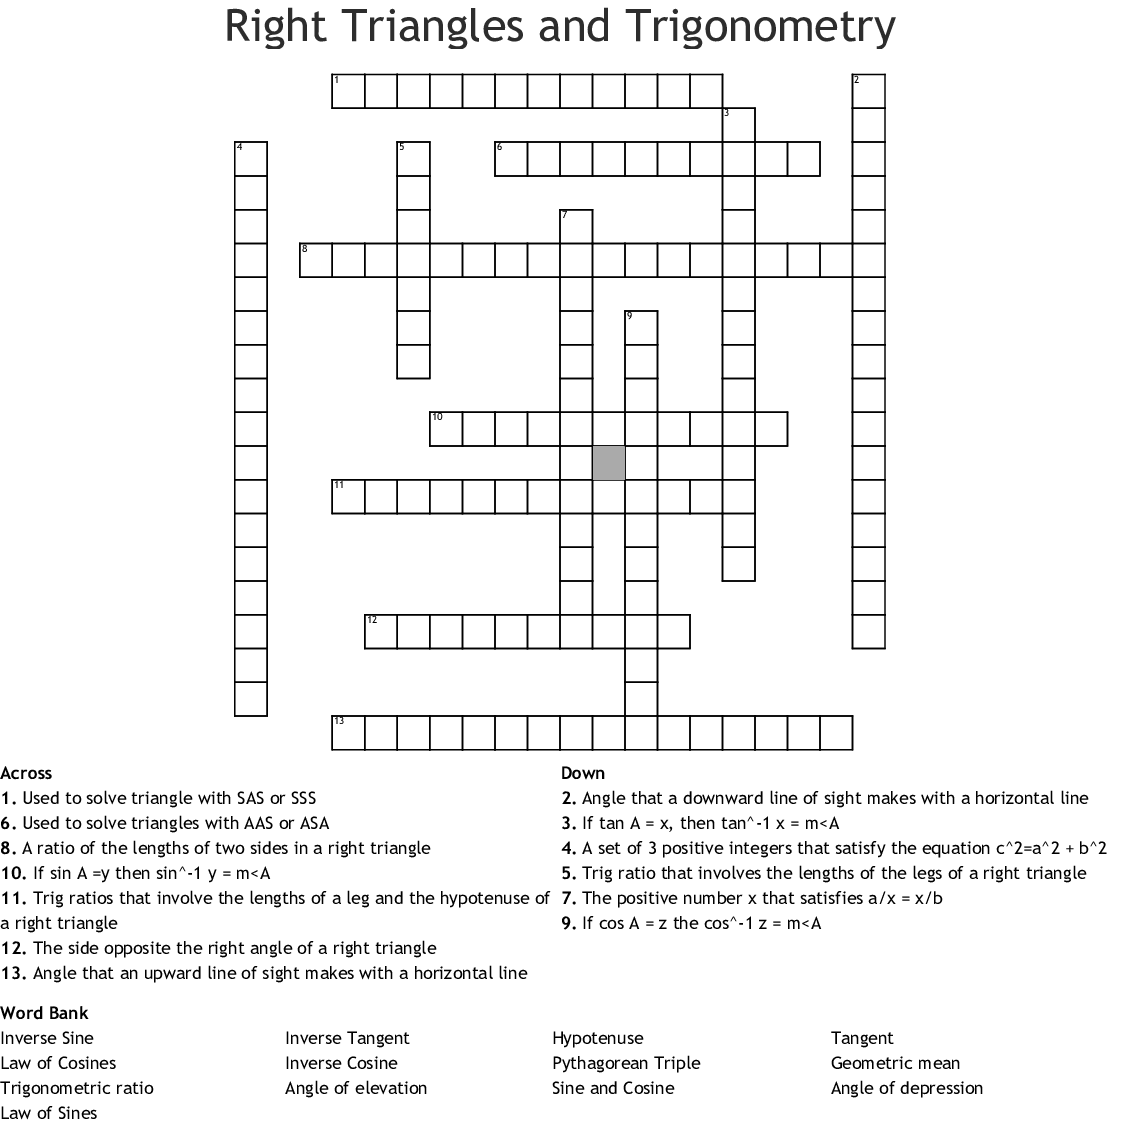 Right Triangles and Trigonometry Crossword - WordMint